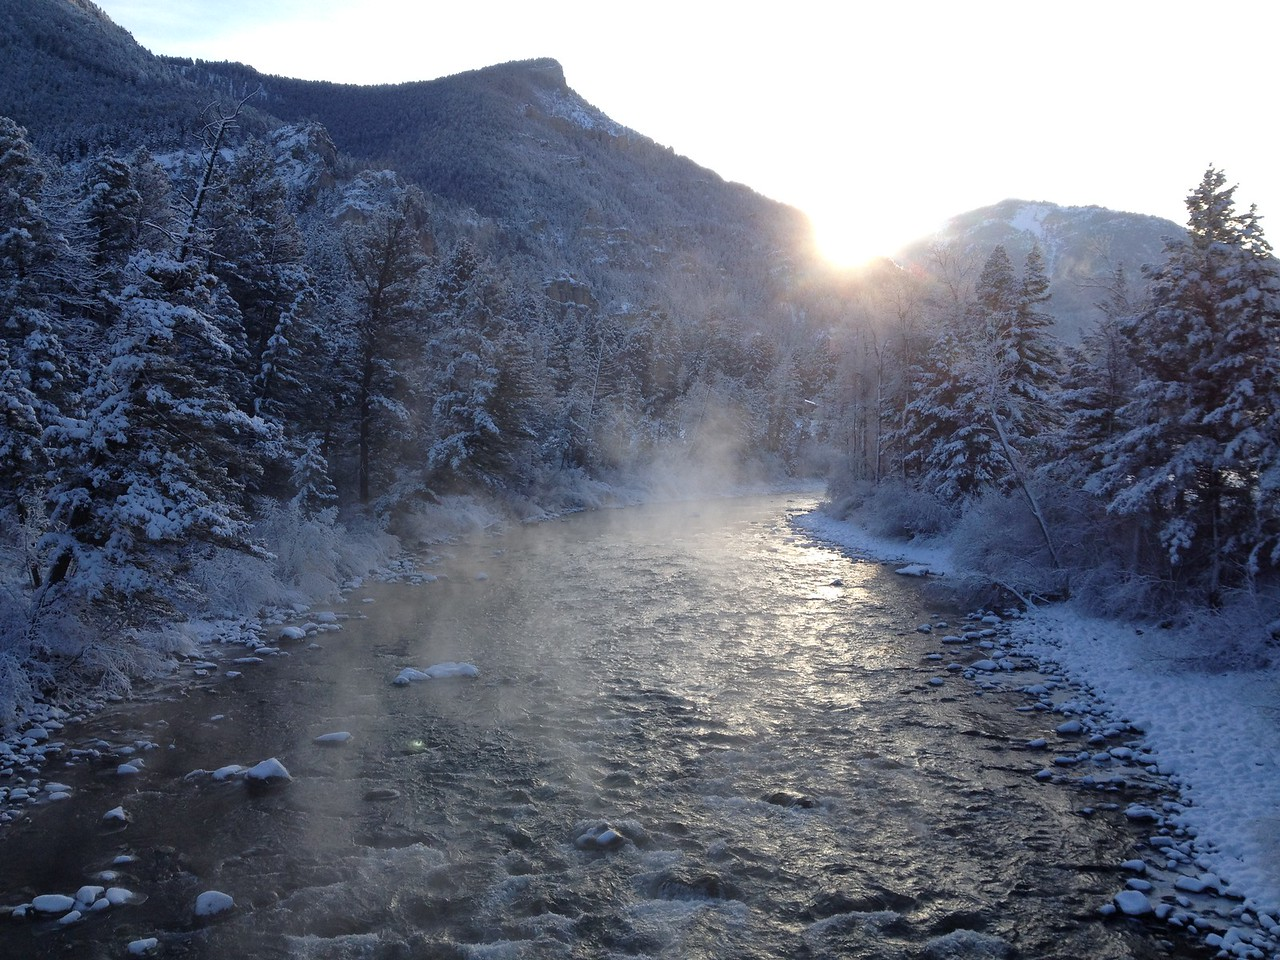 """Winter wonderland on the Gallatin River, as seen from Storm Castle Bridge.  Adventurers and Scientists for Conservation is expanding its Microplatics project to freshwater, and bringing it home to the Greater Gallatin Watershed. Become an adventure scientist and help them collect data from your home: <a href=""""http://www.adventurescience.org/microplastics.html"""">http://www.adventurescience.org/microplastics.html</a>"""